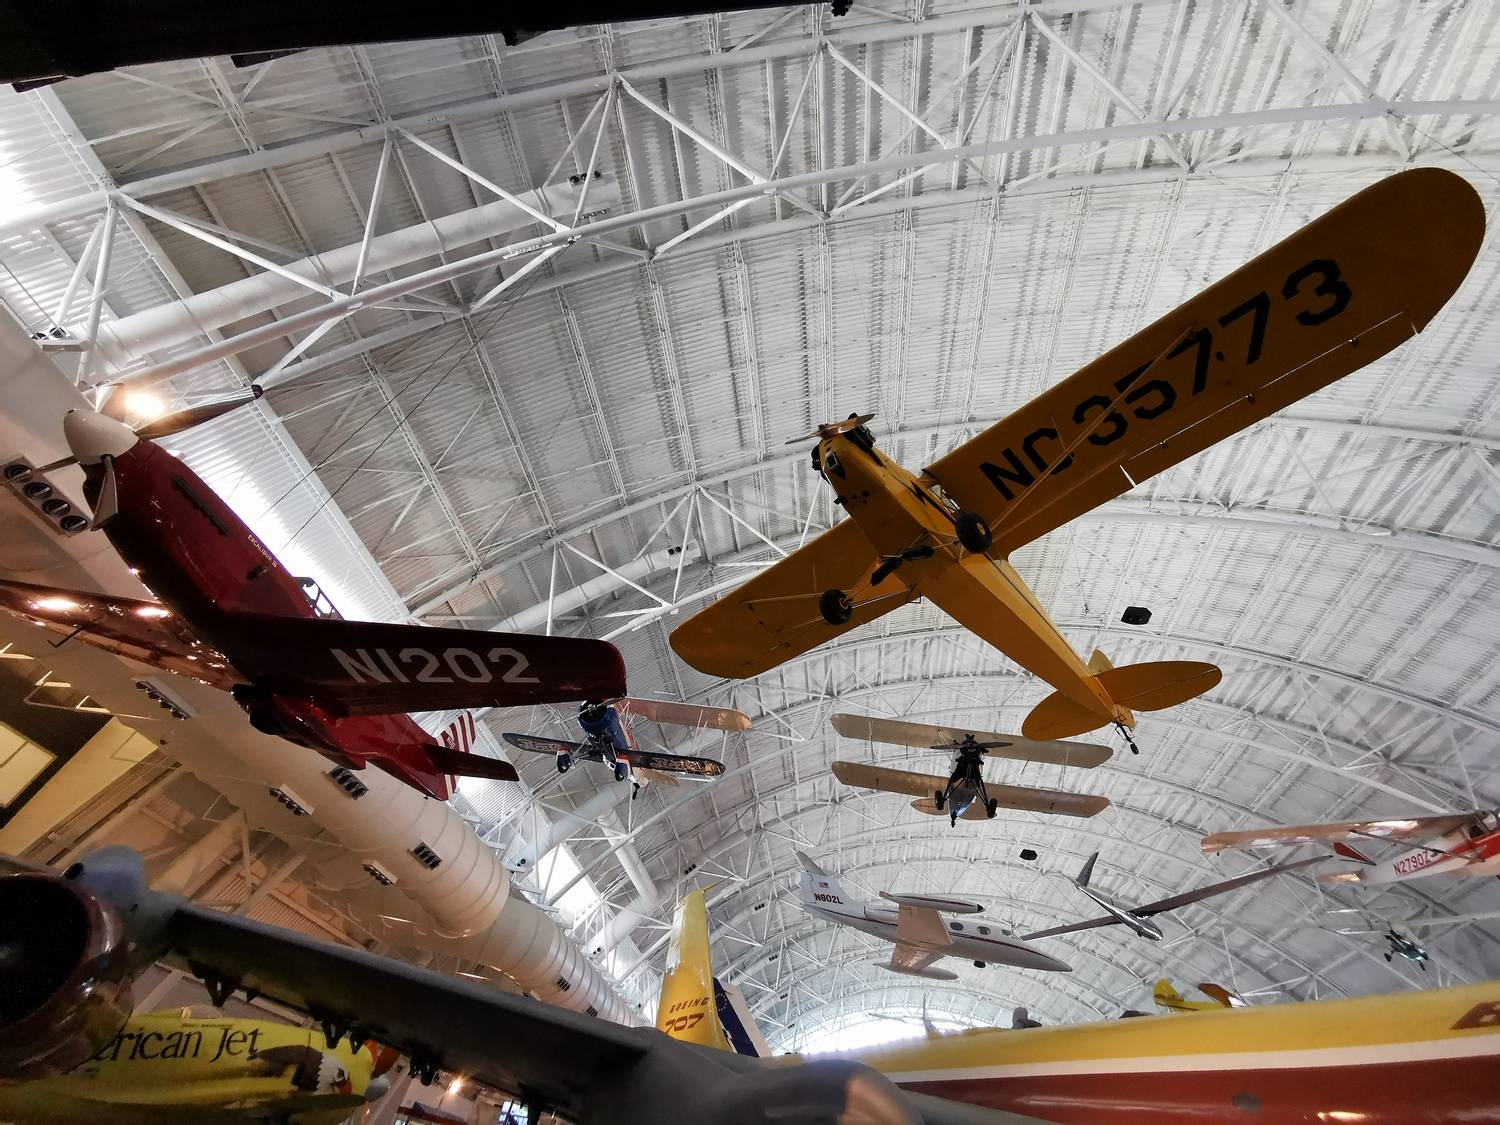 - At the Air and Space Museum with a Huawei P30 Pro -  - Huawei P30 Pro, Sony RX100 M6, Udvar-Hazy Air and Space Museum - - Tony Karp, design, art, photography, techno-impressionist, techno-impressionism, aerial photography , drone , drones , dji , mavic pro , video , 3D printing - Books -